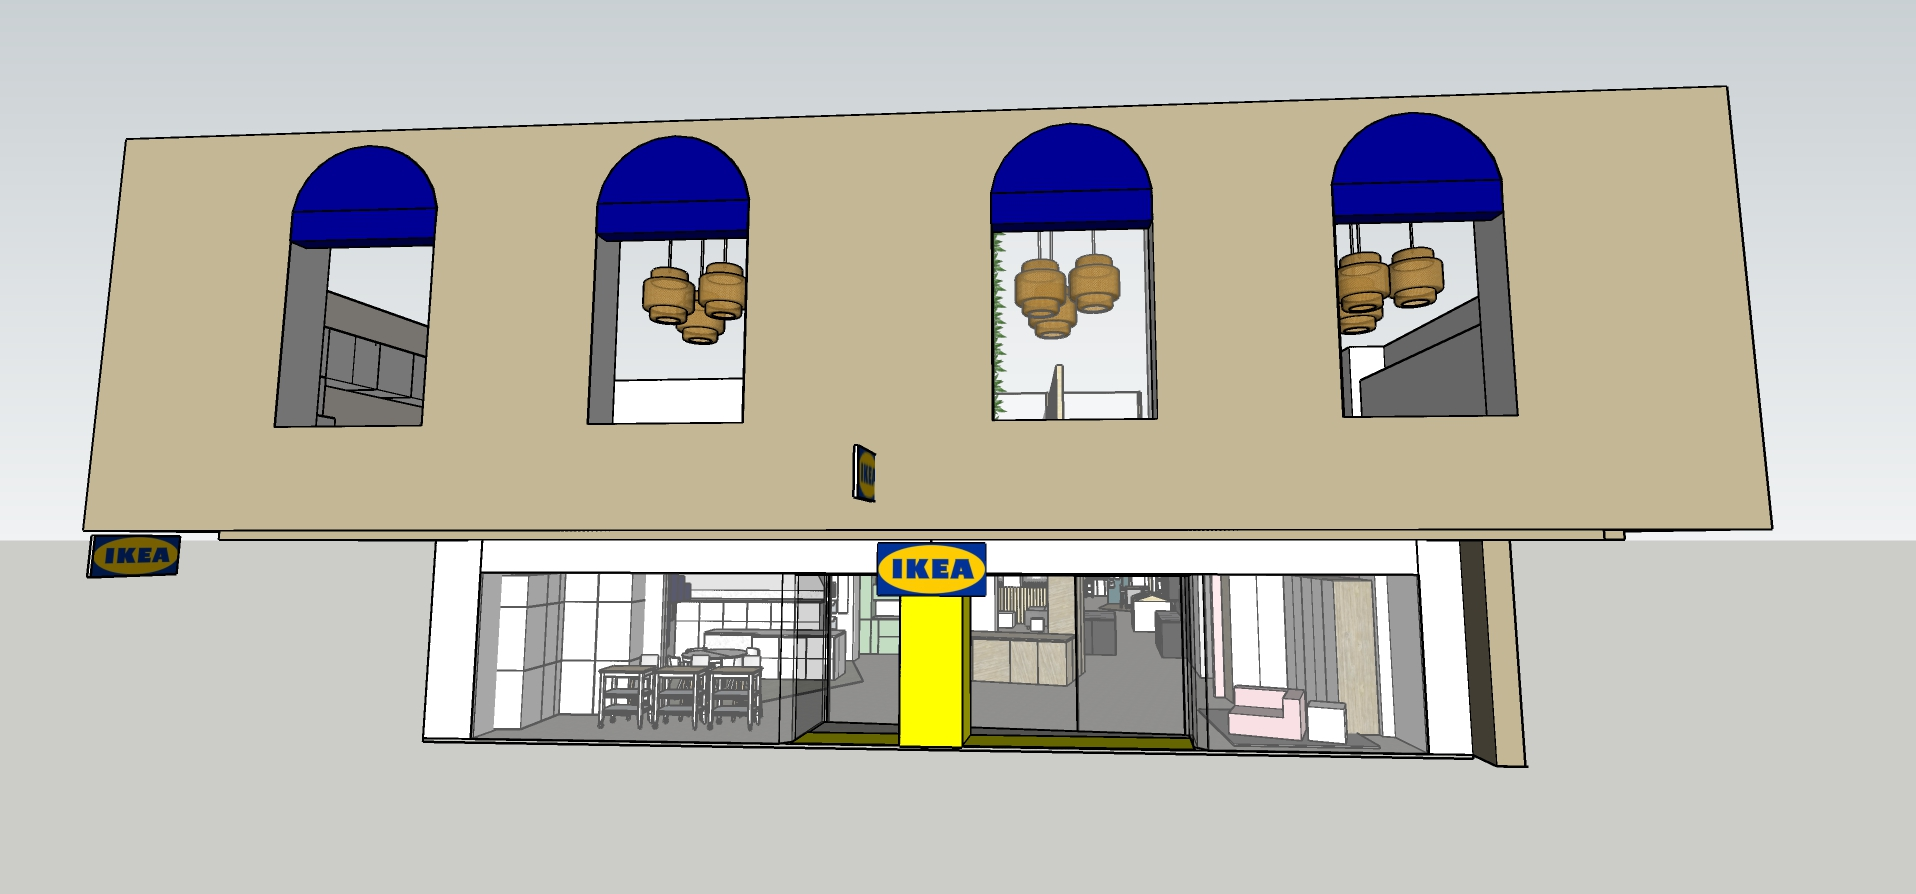 ikea uk to open new planning studio in bromley as part of. Black Bedroom Furniture Sets. Home Design Ideas